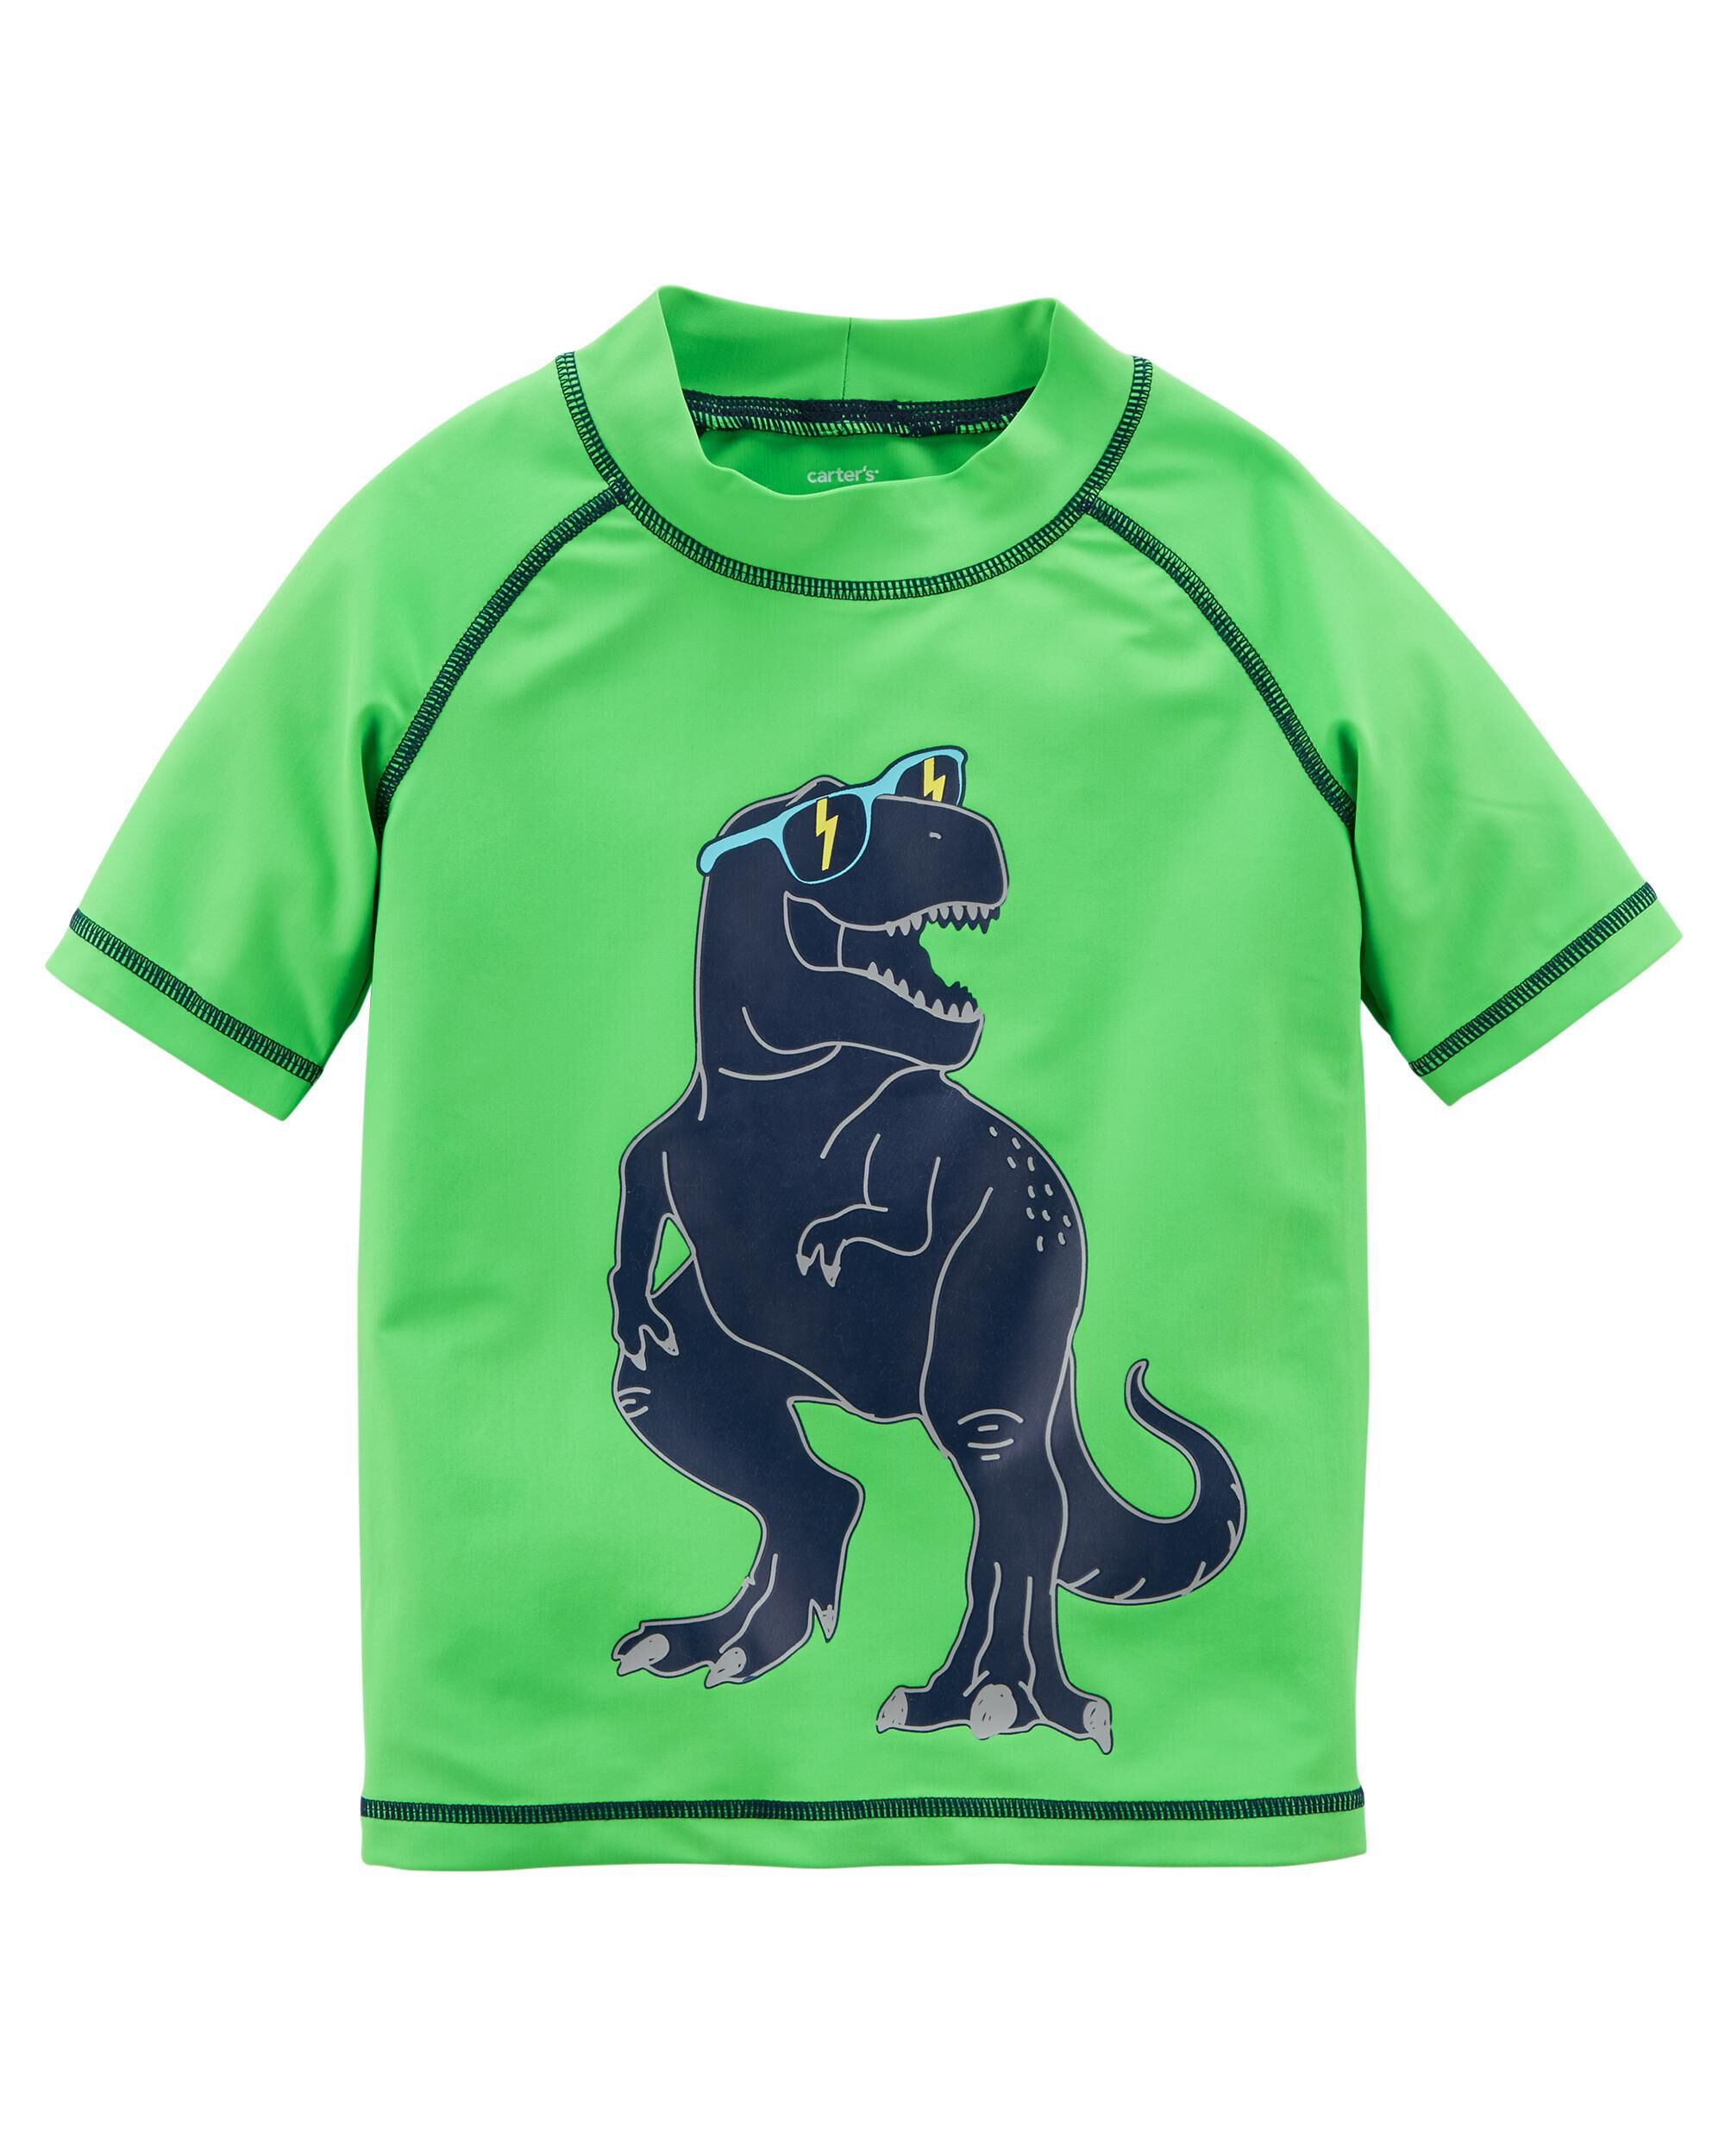 0fe40f8446 Carter's Dinosaur Rashguard. Protect your little one ...